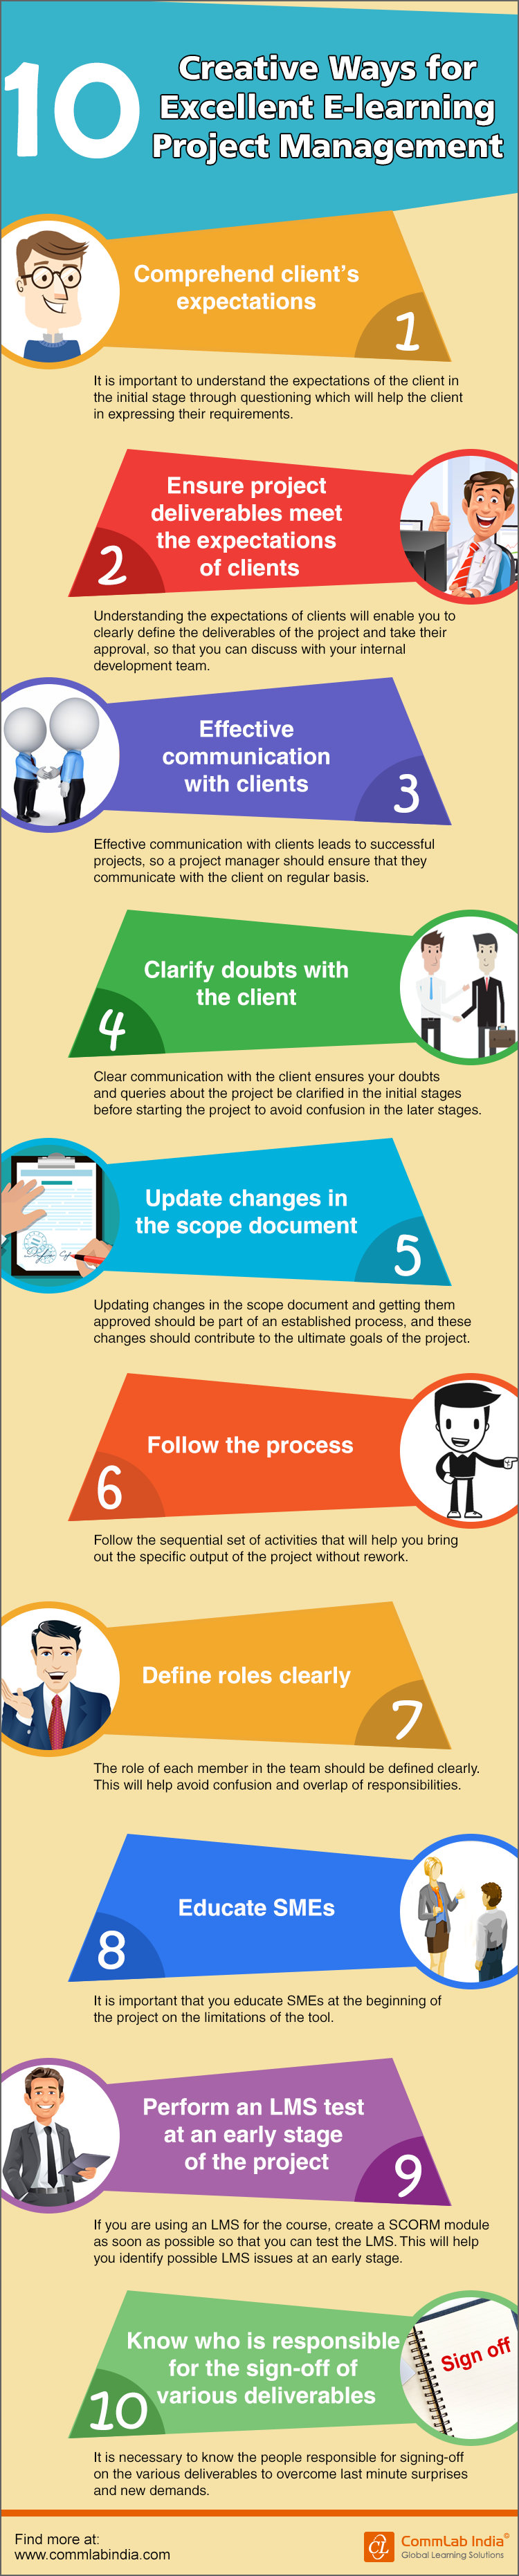 10 Creative Ways for Excellent E-learning Project Management [Infographic]